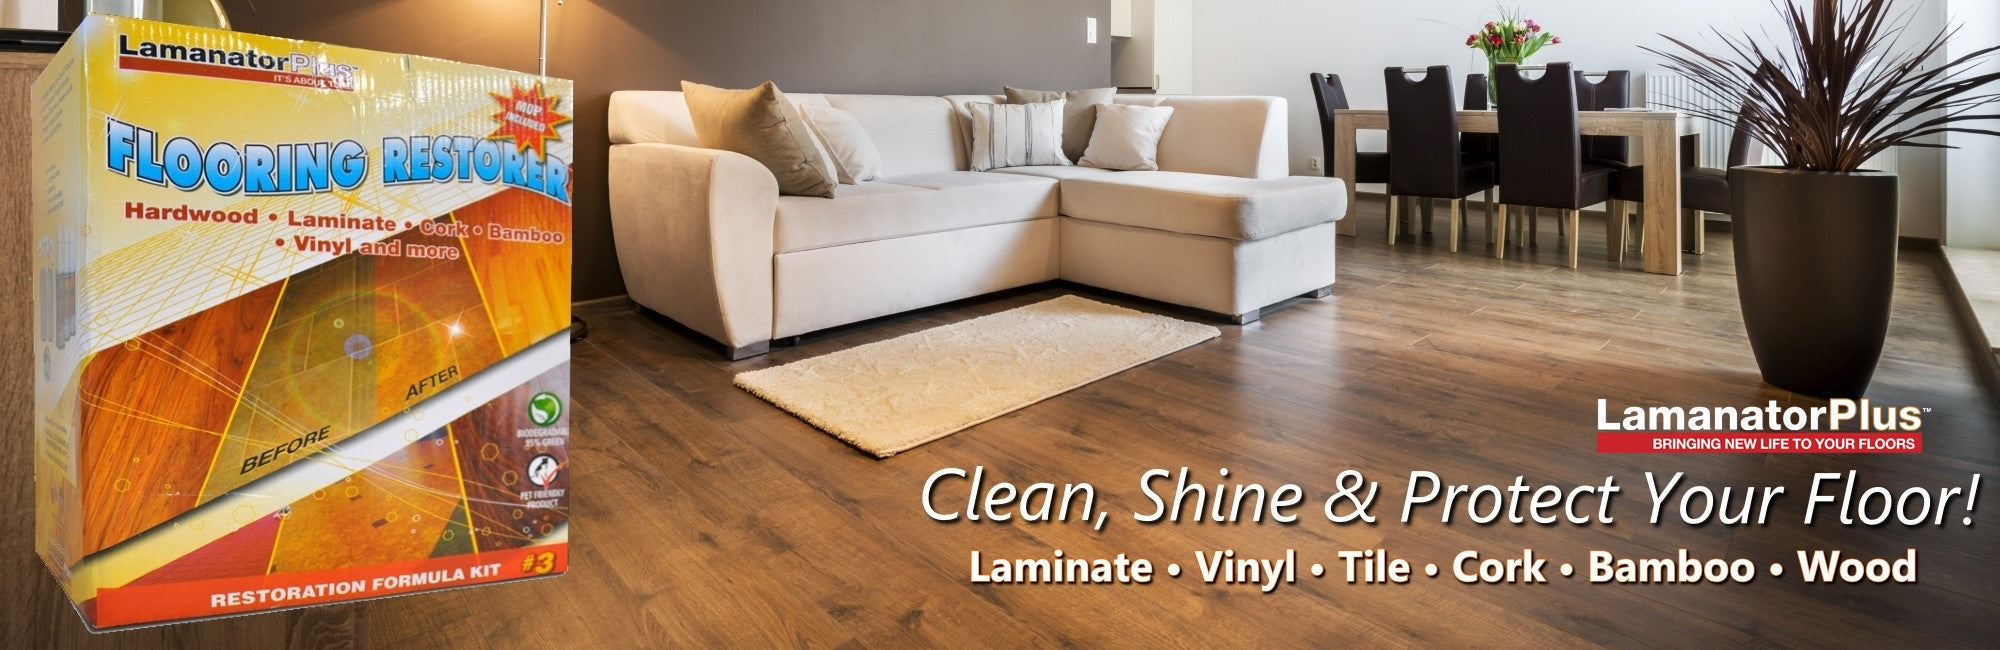 Protect, Shine & Clean Laminate Floor w/ Lamanator Plus